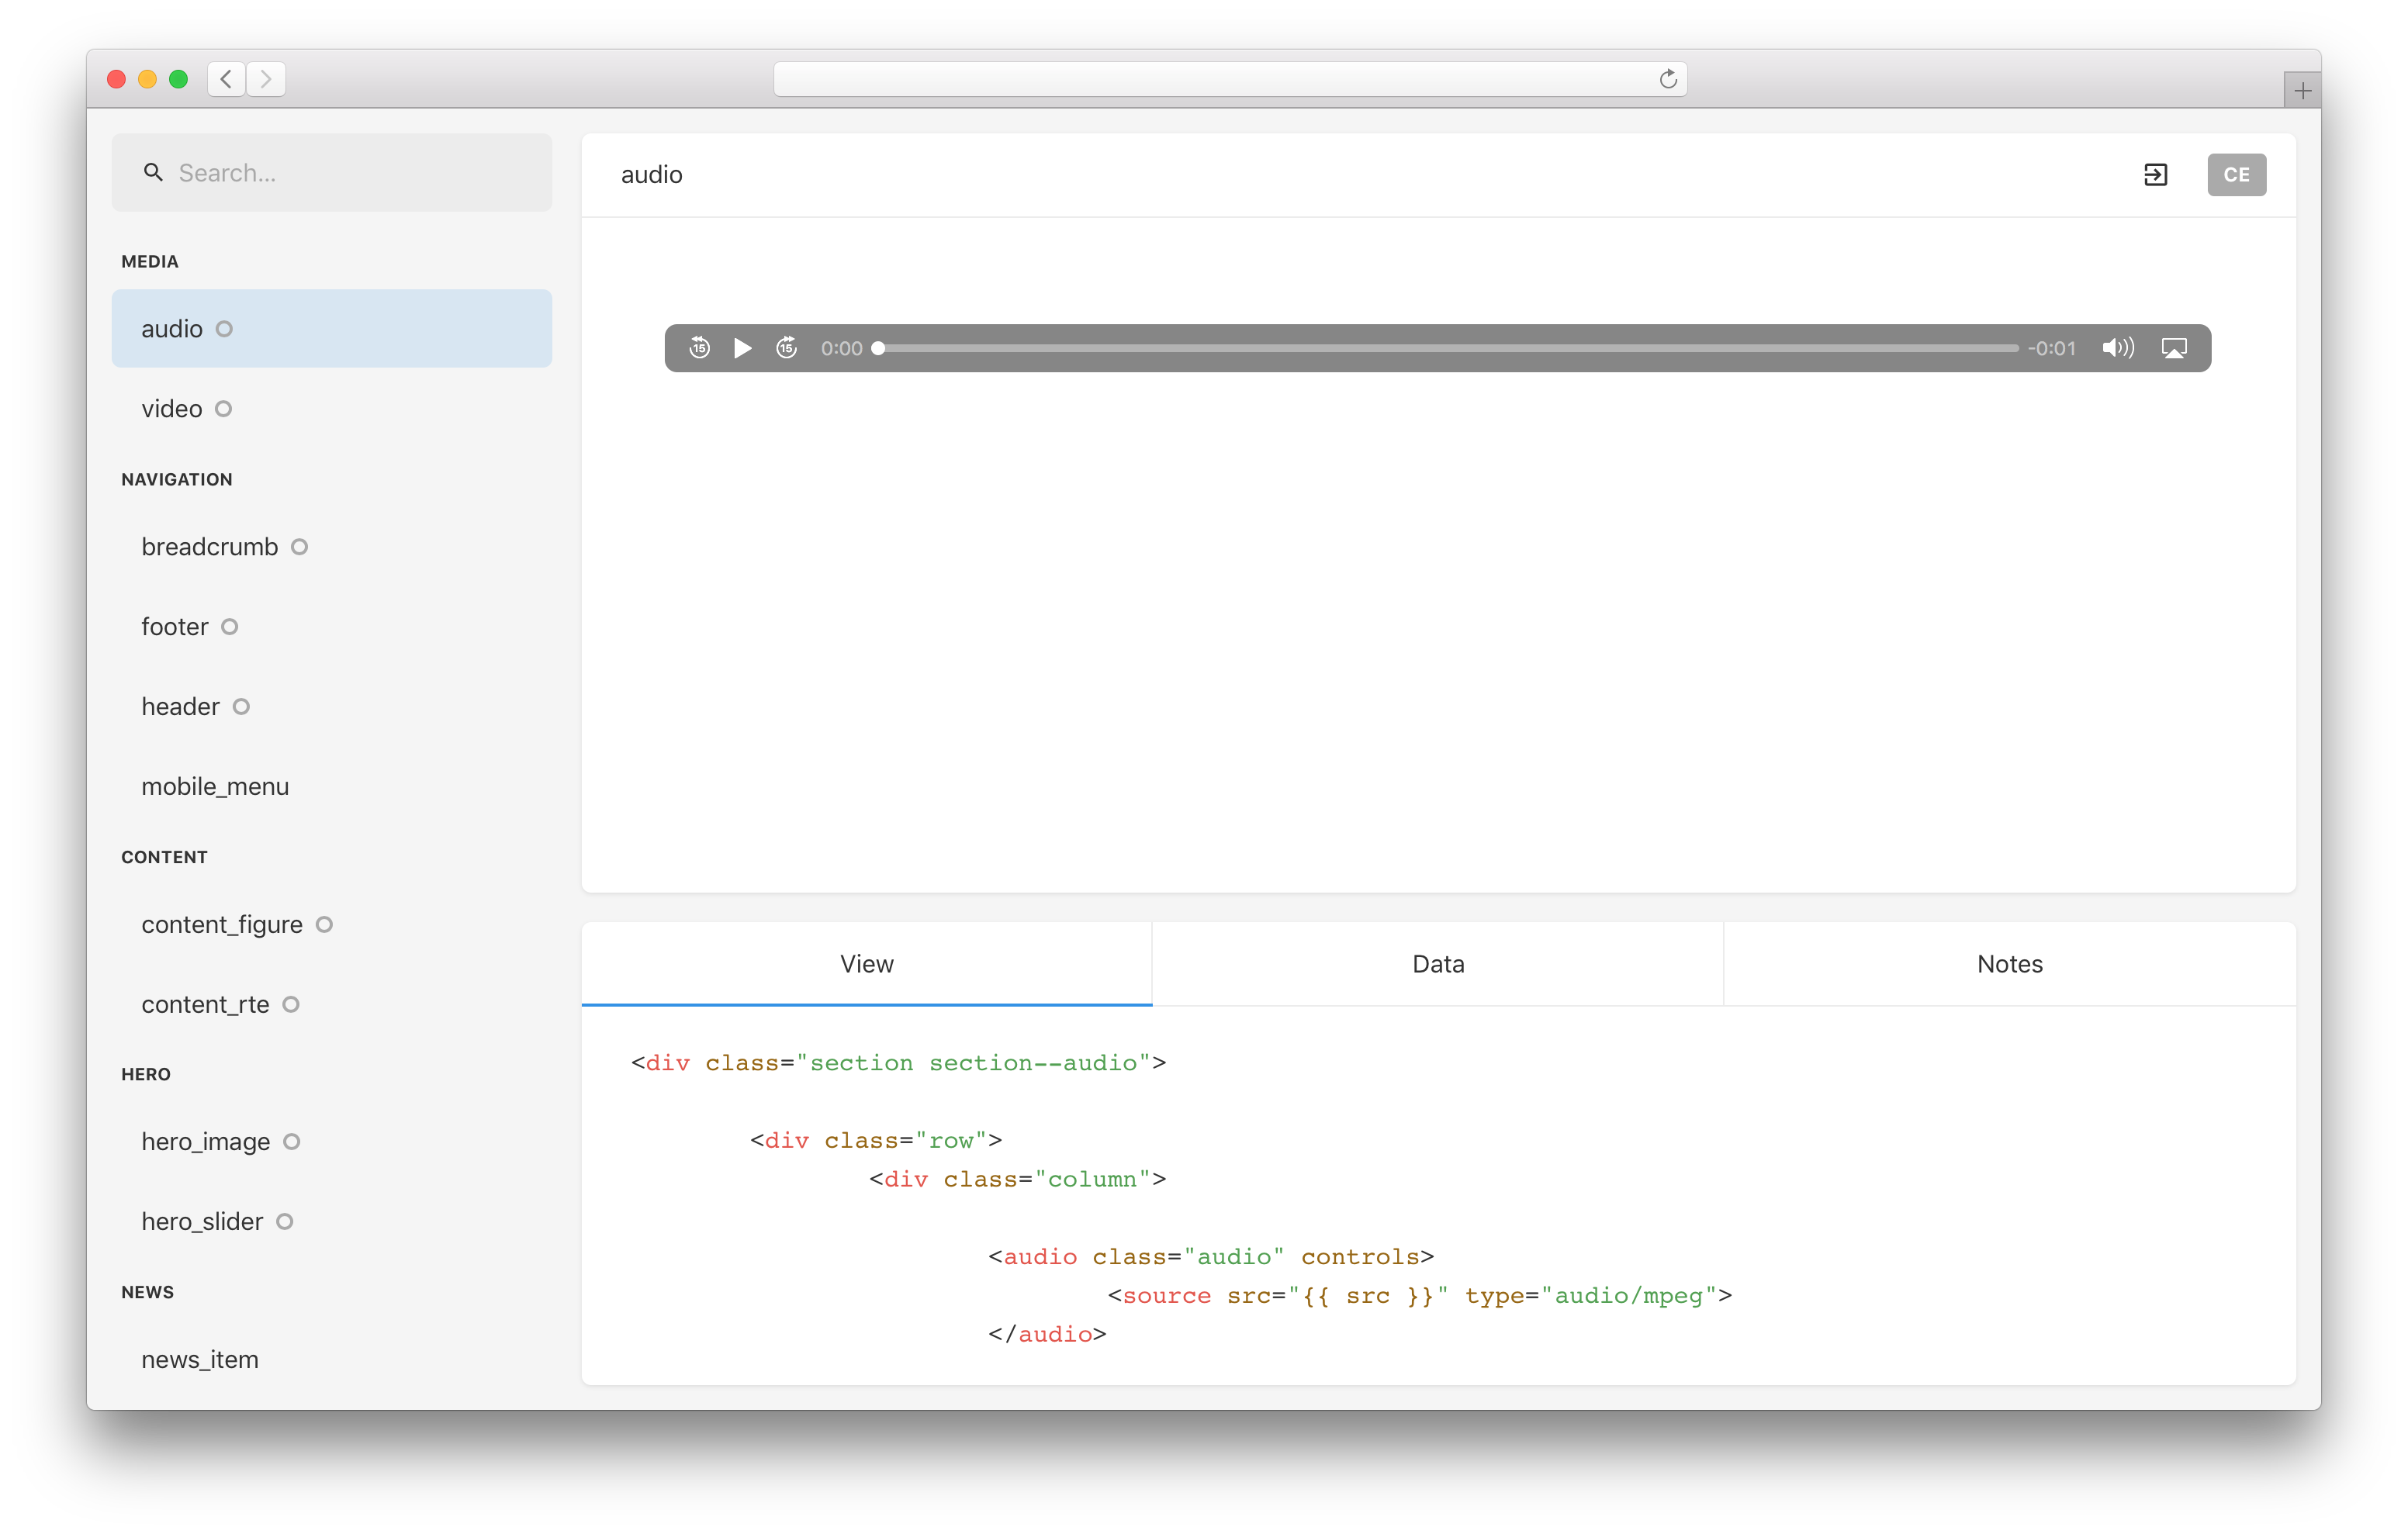 Malvid UI in a browser